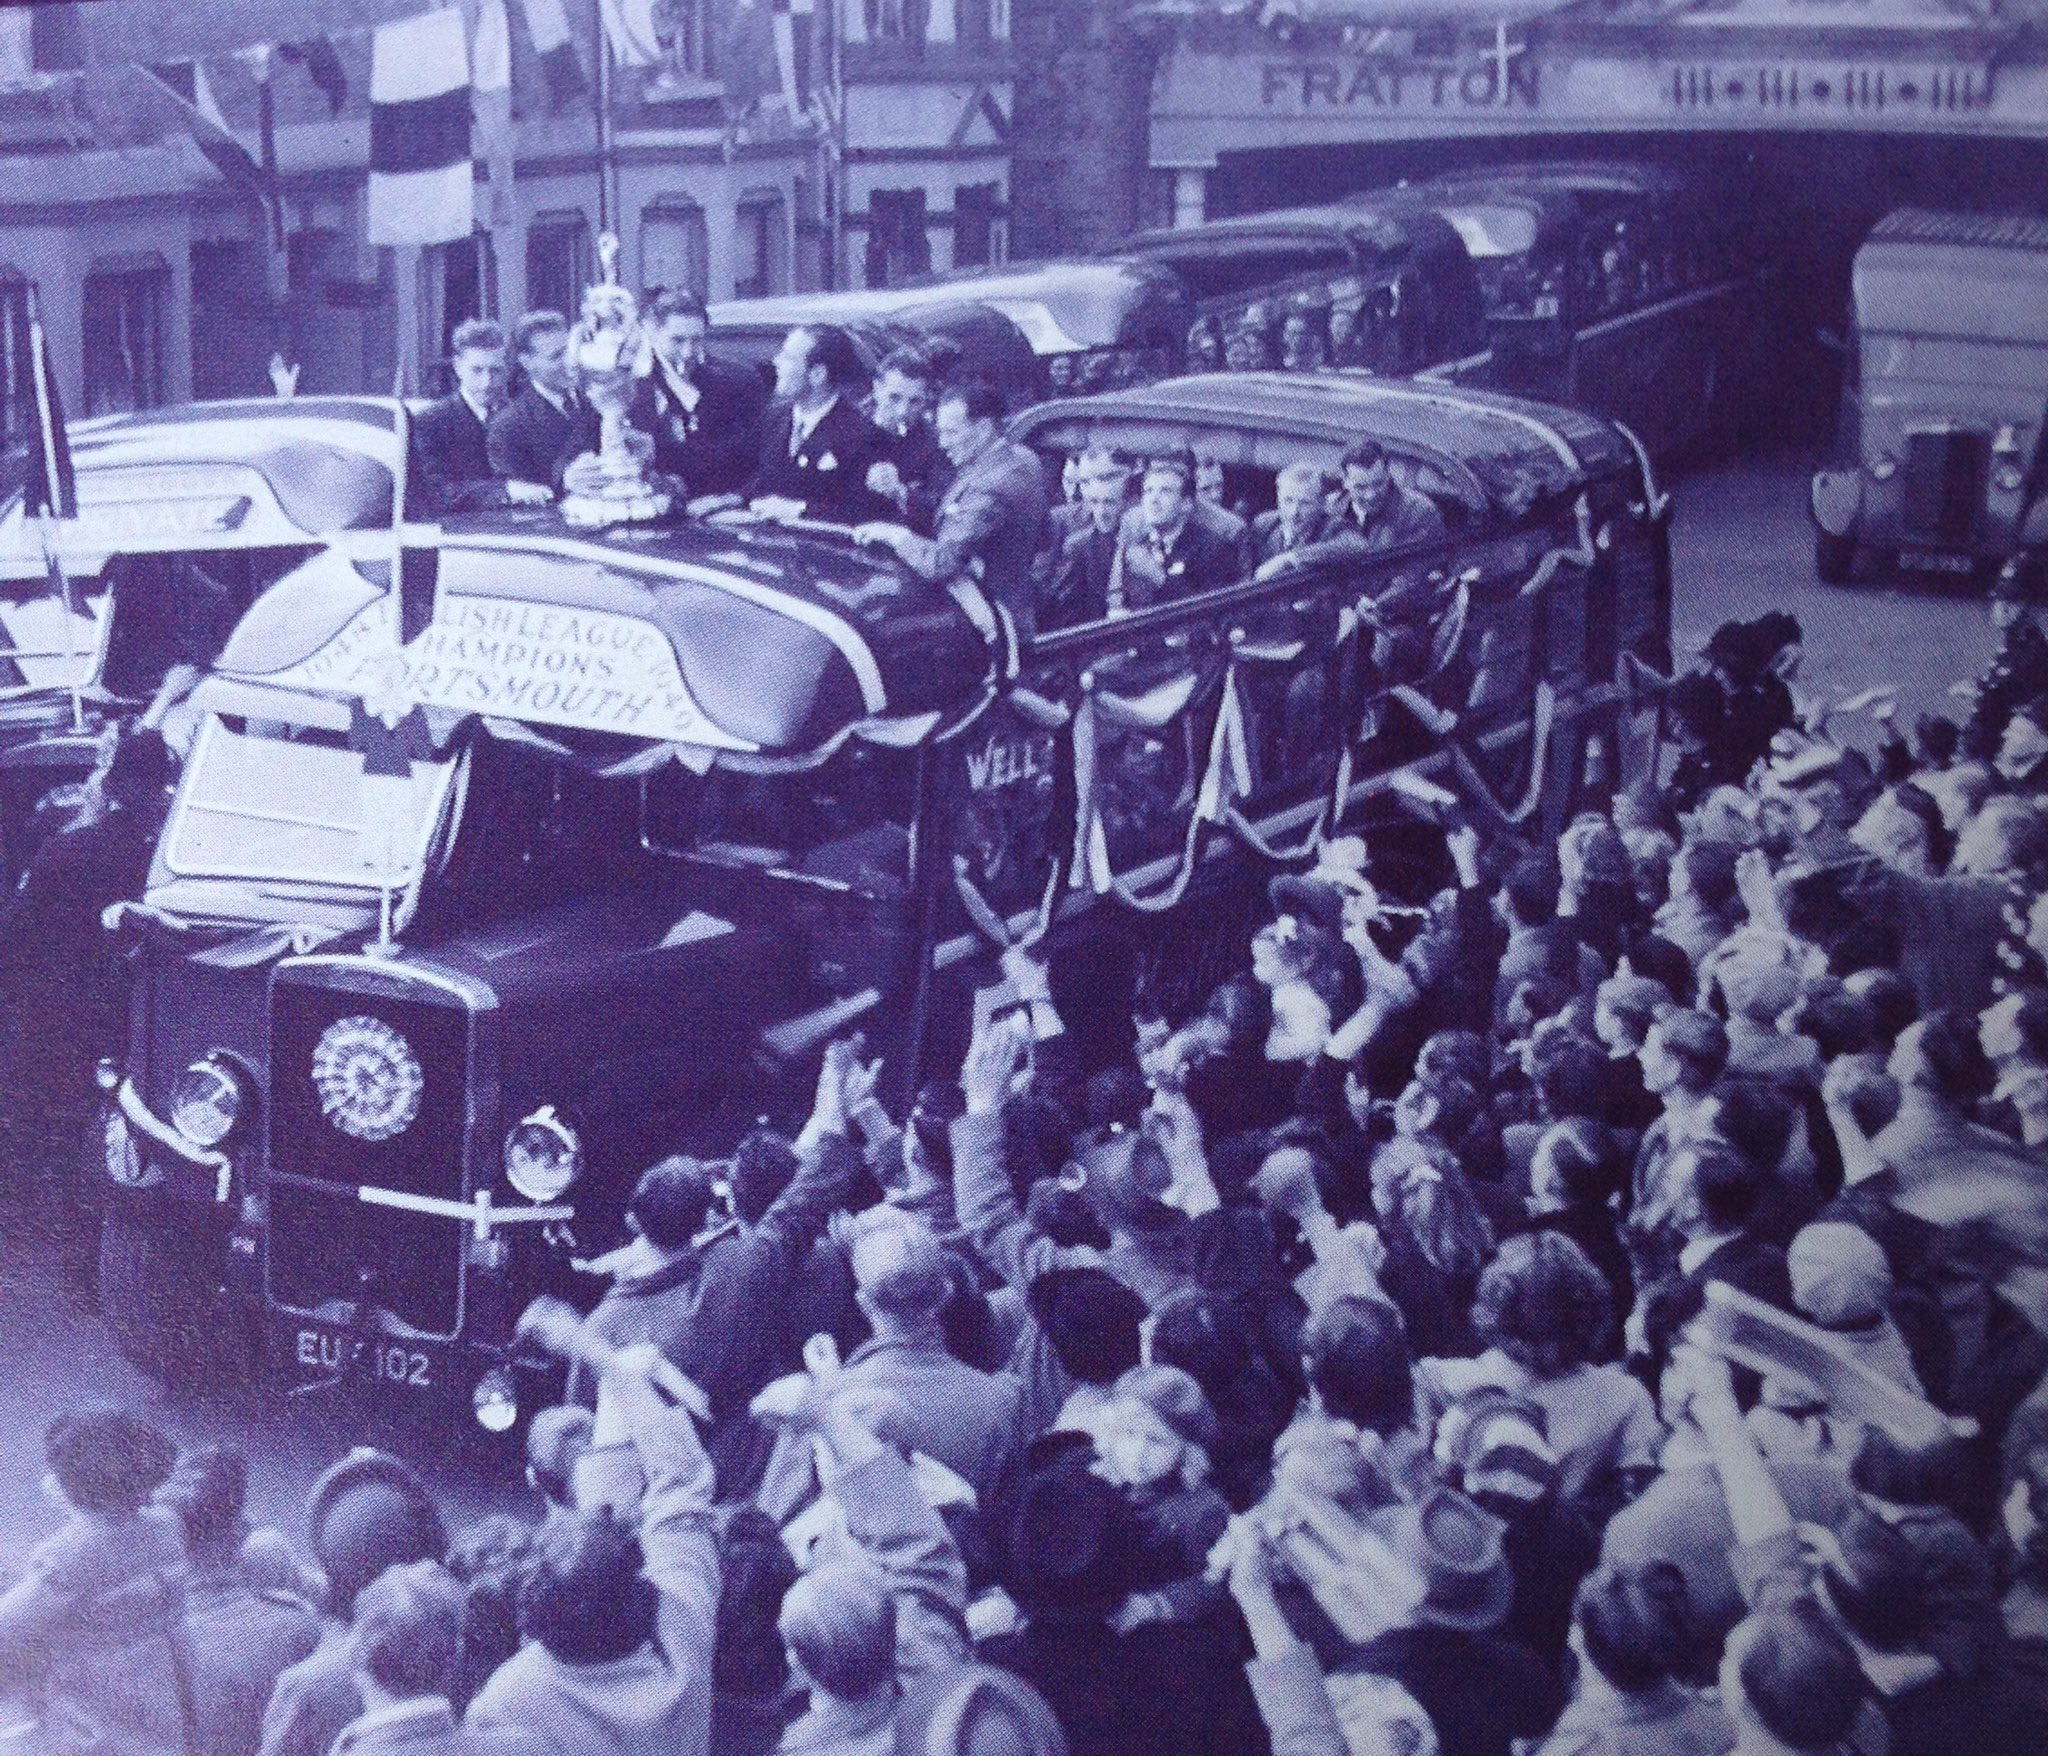 The #Pompey players leave Fratton Park to parade the League Championship trophy at the end of the 1948/48 season. #PompeyHistory https://t.co/MGrSnwA58V